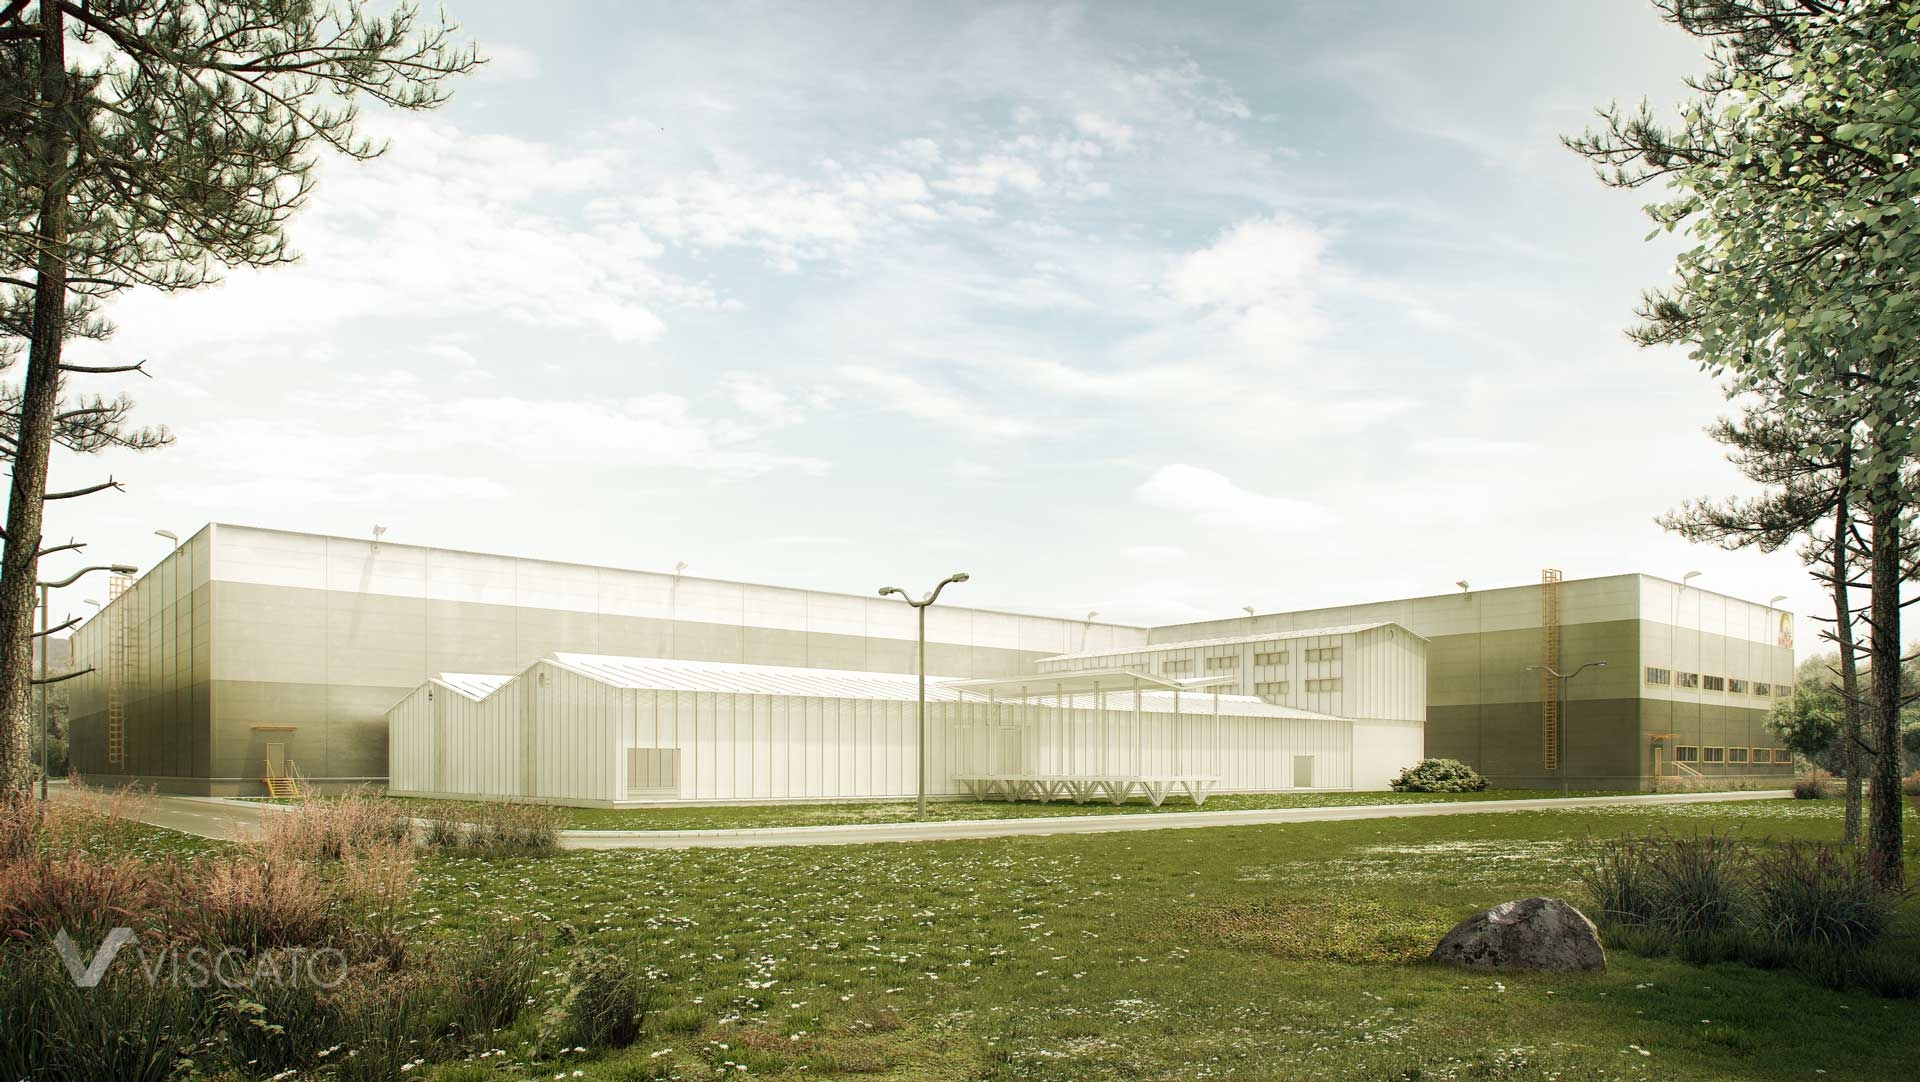 3d visualization of production hall for food producer - Sonko. View is showing longer facade of factory, with additional building, meadow and trees.